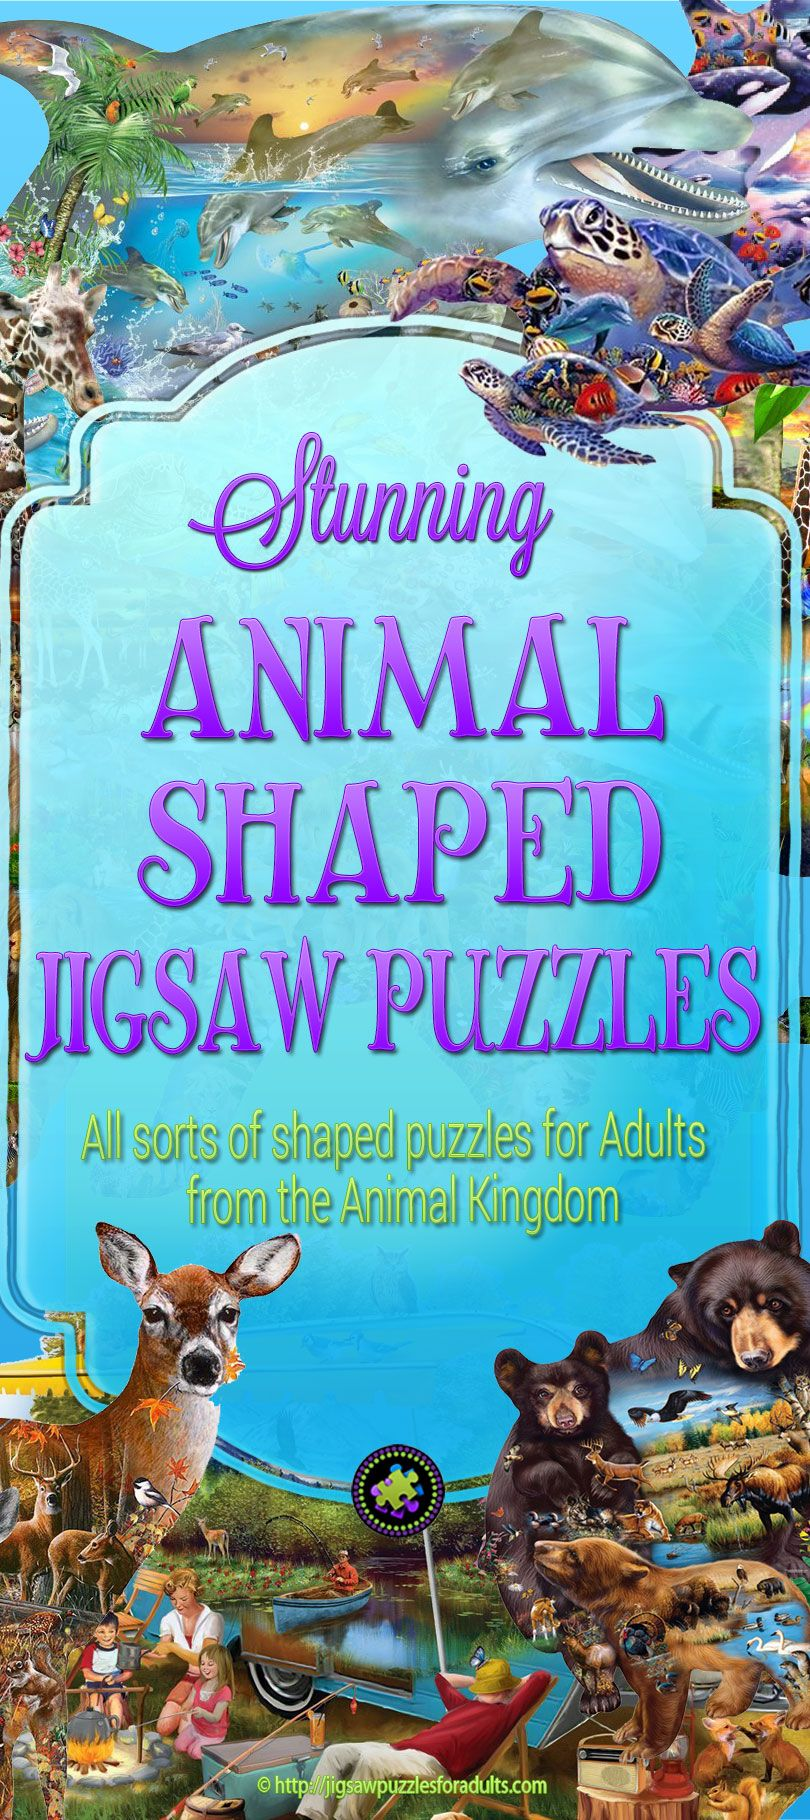 Animal Shaped Jigsaw Puzzles Jigsaw puzzles, African